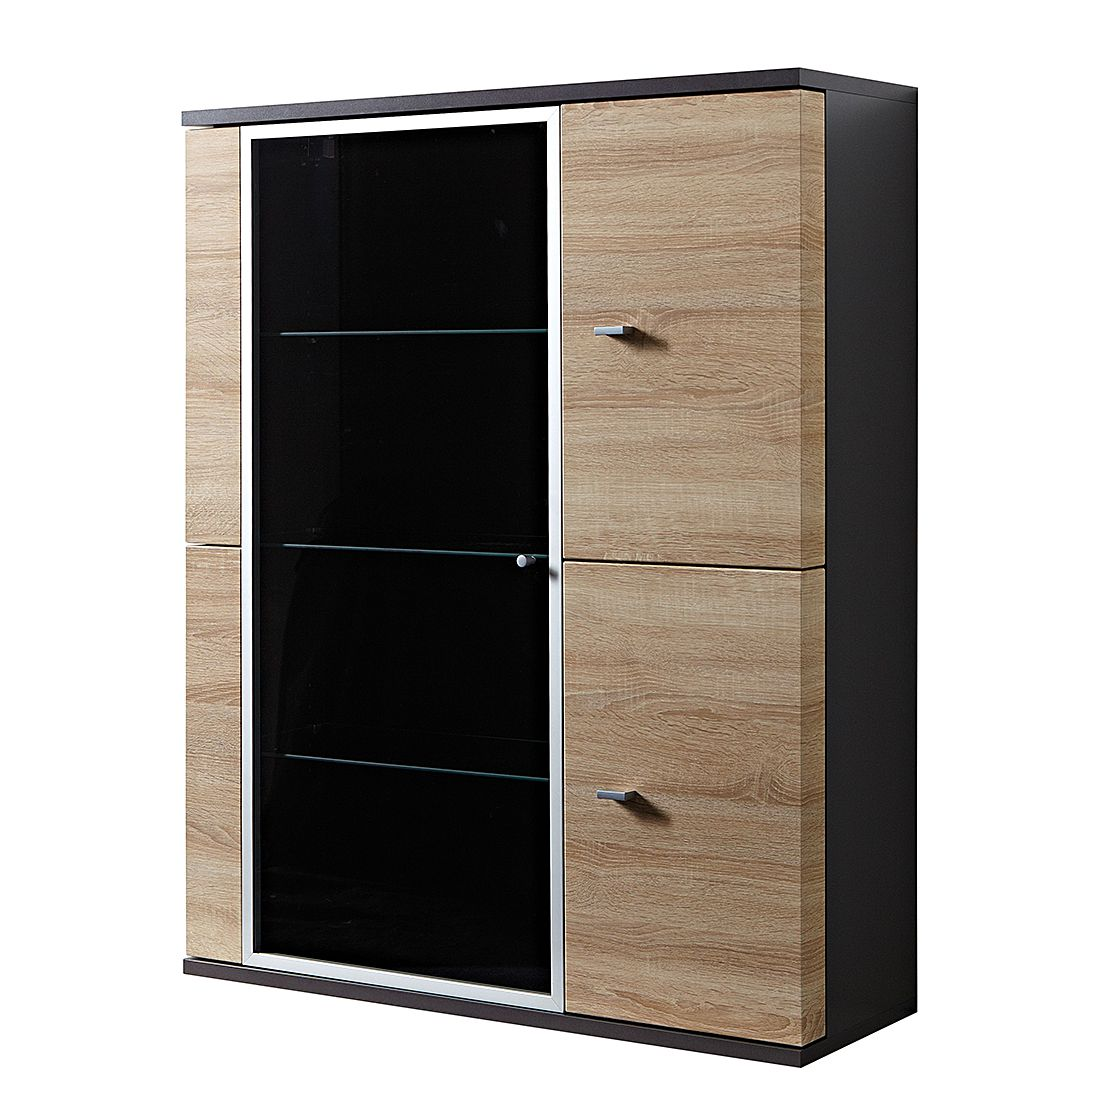 h ngevitrine zinnowitz eiche sonoma dekor anthrazit top square bestellen. Black Bedroom Furniture Sets. Home Design Ideas